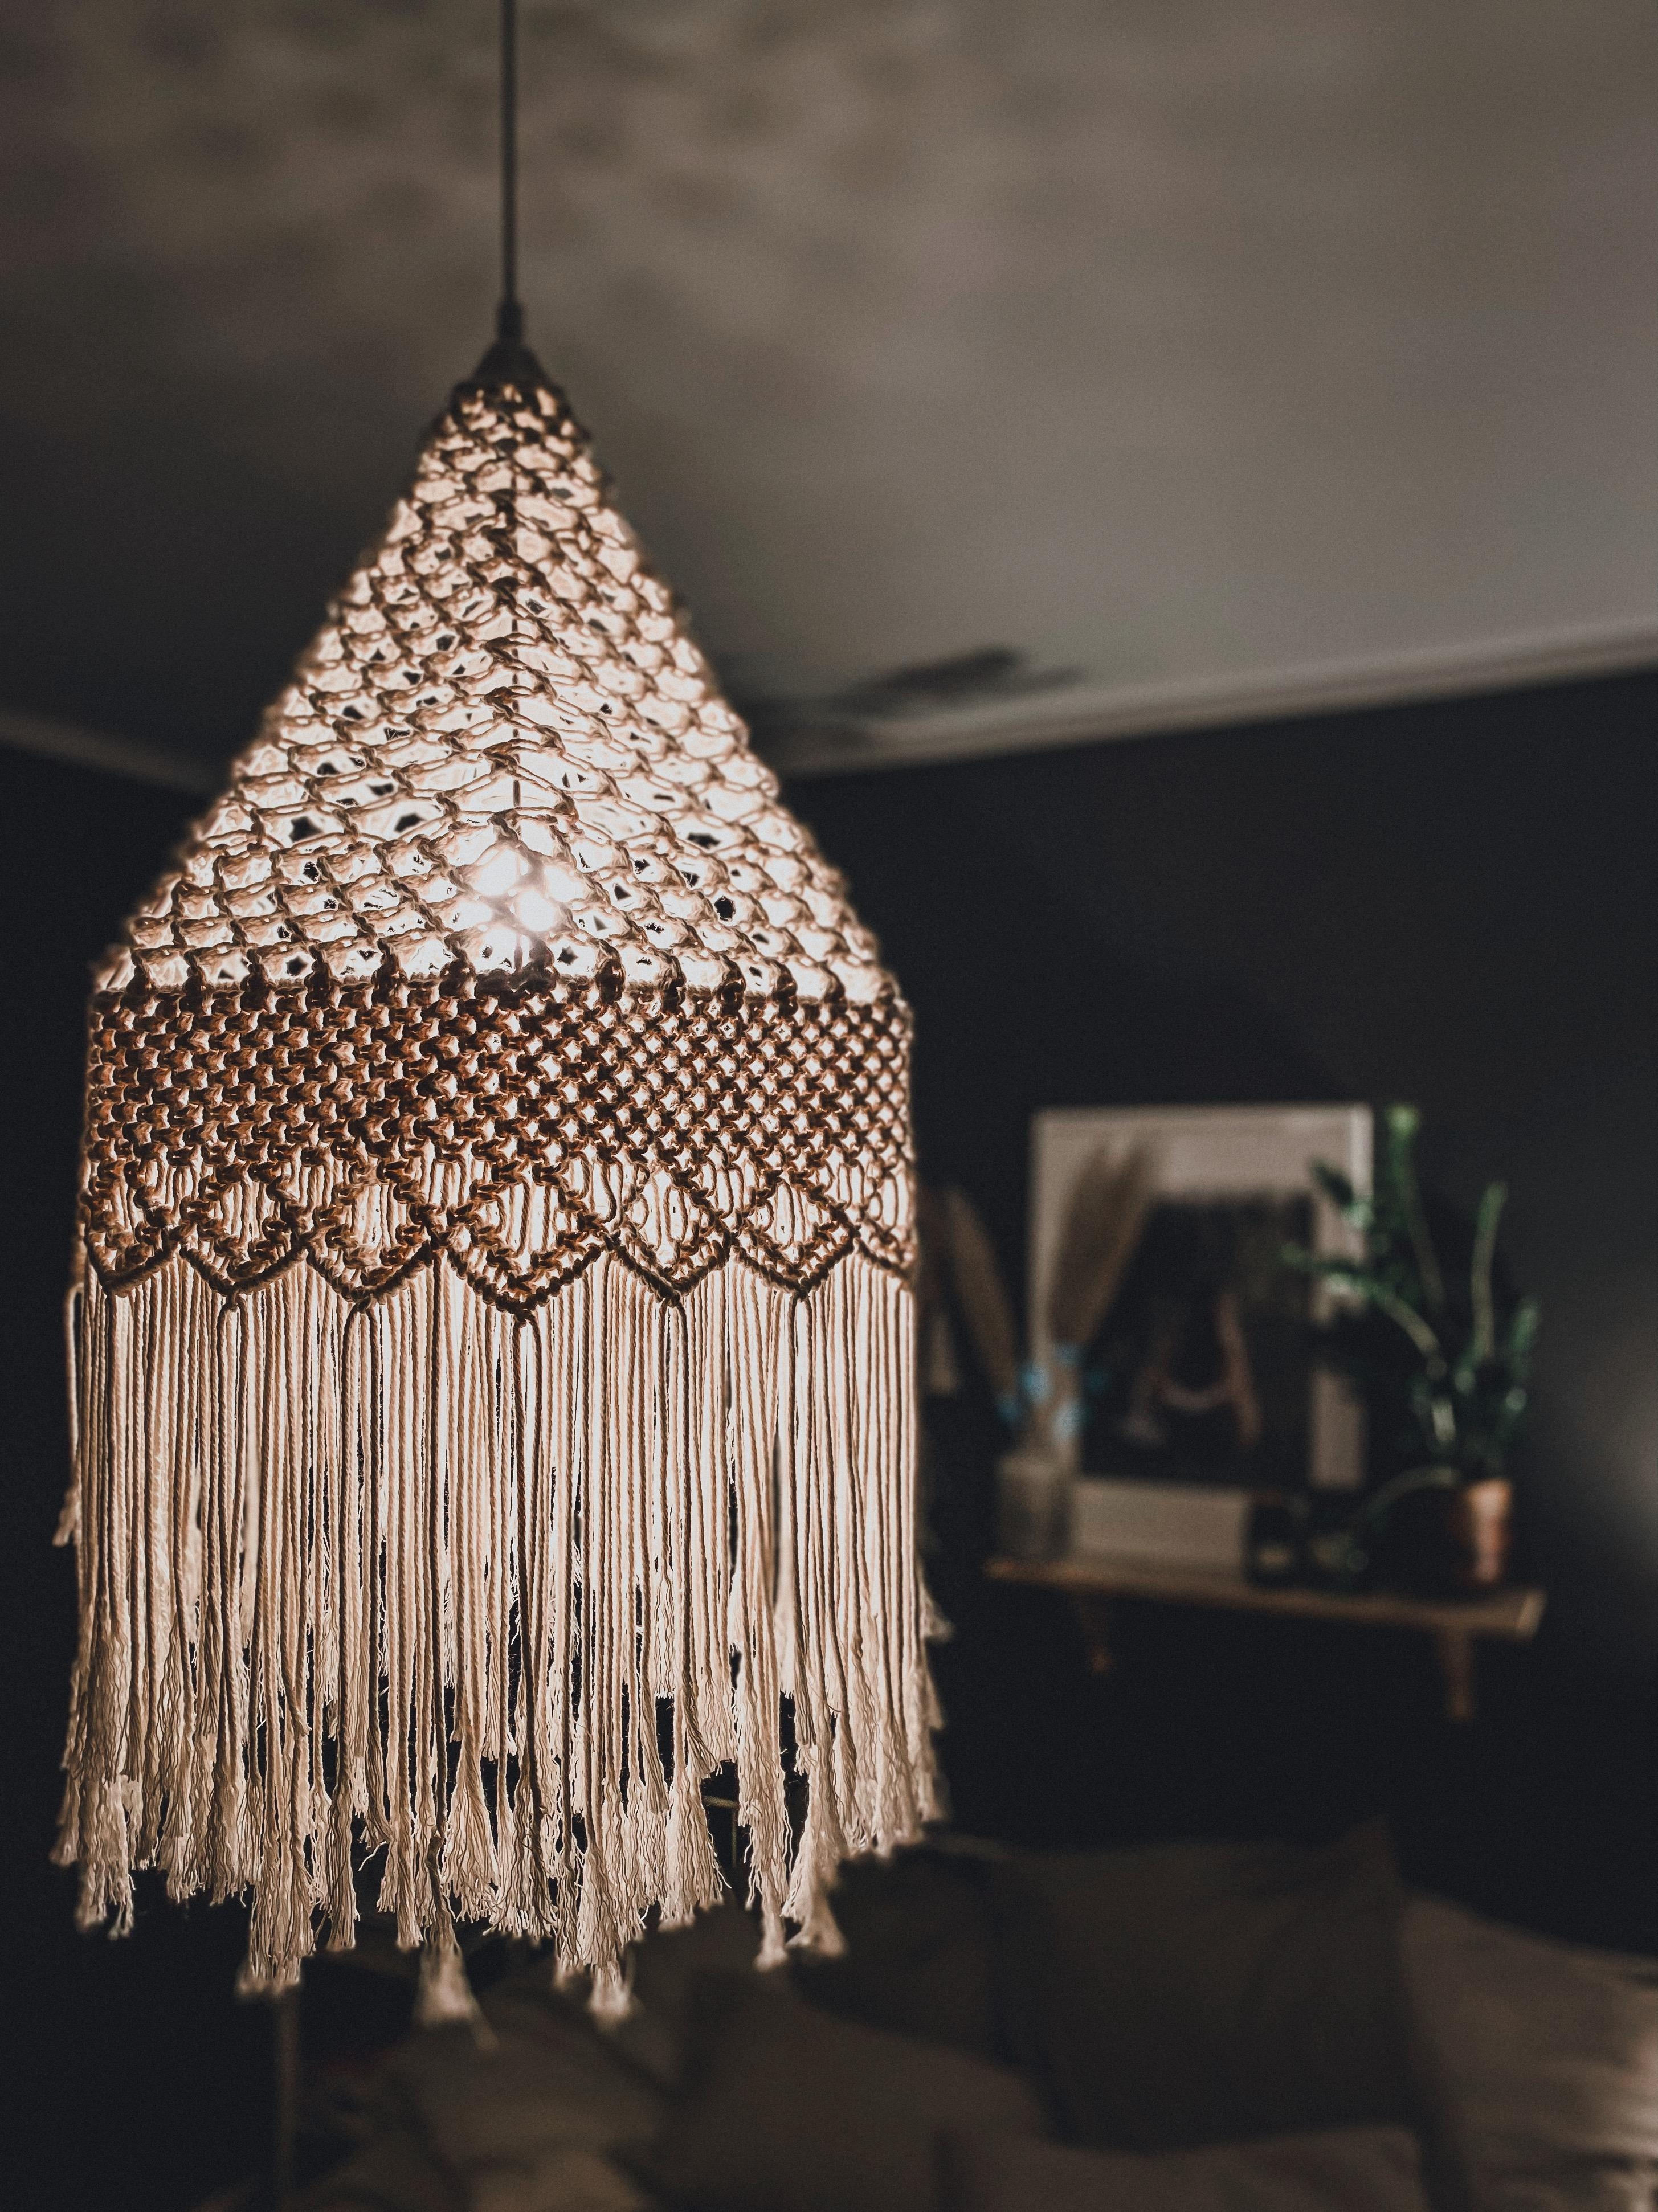 DIY Makrameelampe #light #makramee #diy